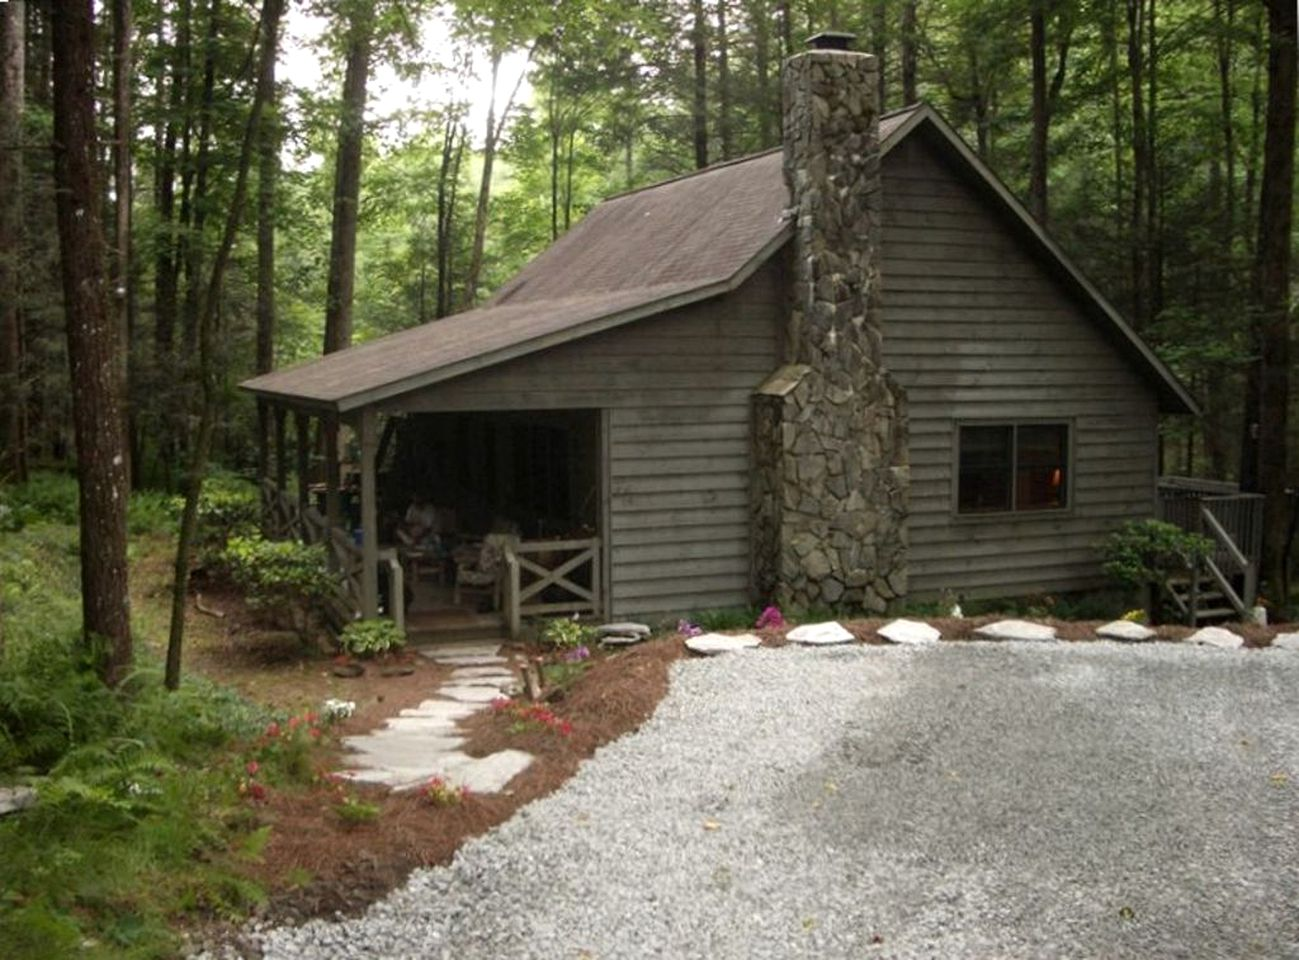 Rustic Cabin Rental near Highlands, North Carolina